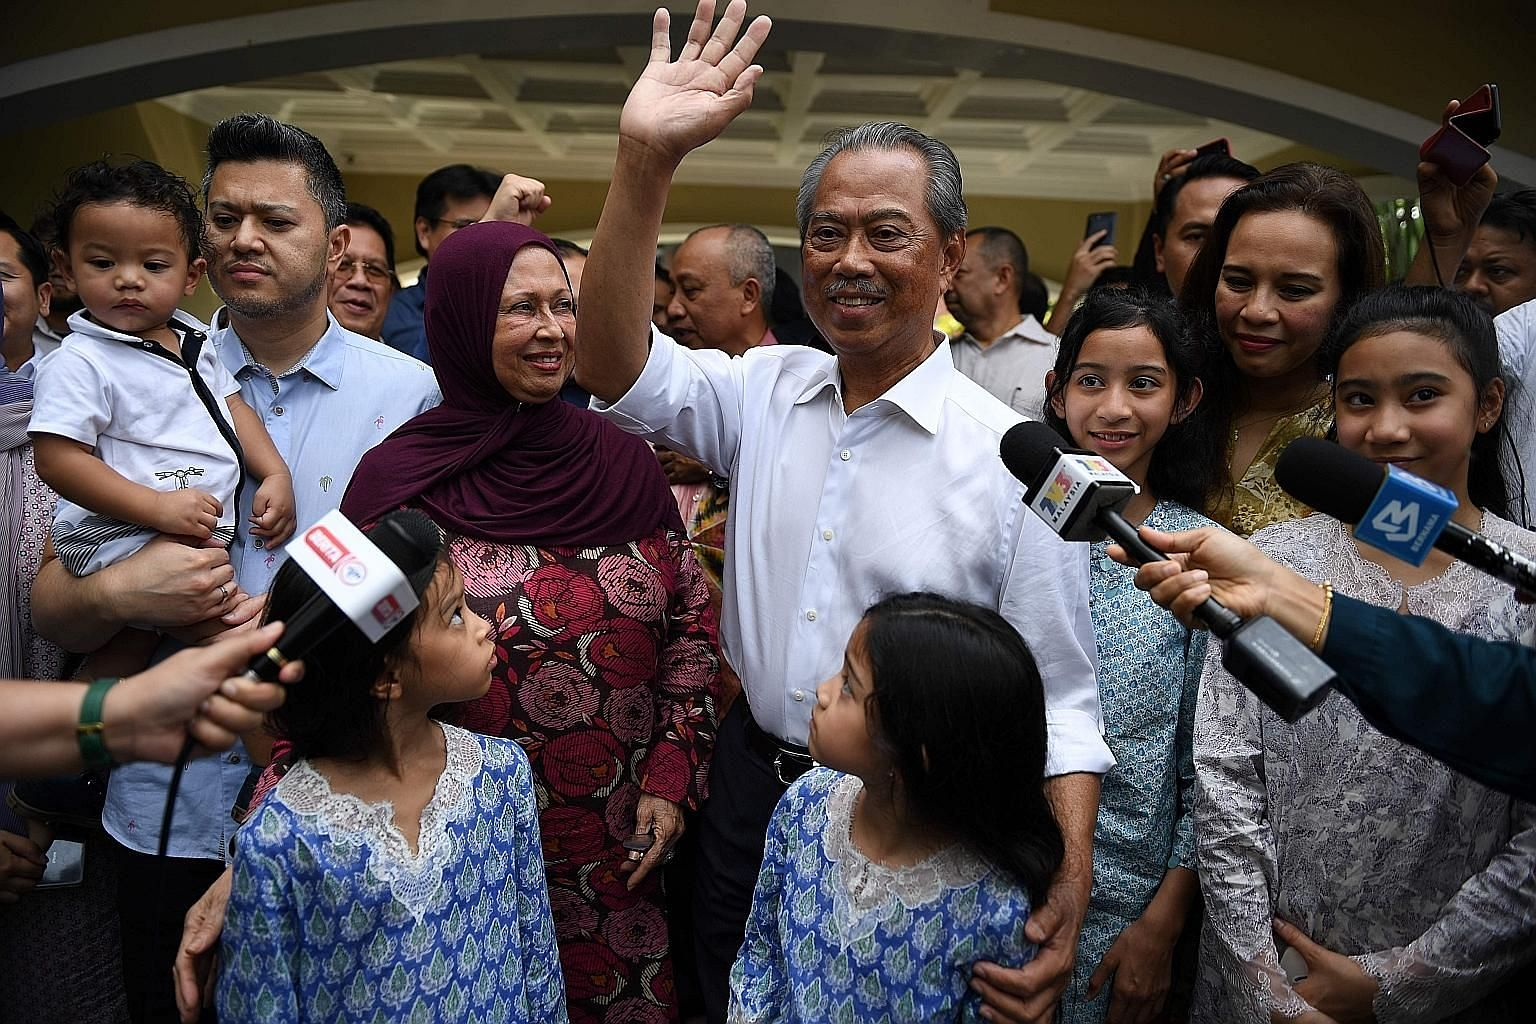 Tan Sri Muhyiddin Yassin and his family outside his home in Kuala Lumpur on Feb 29, after royal officials had named him Malaysia's eighth prime minister. Few observers would have predicted that Mr Muhyiddin would seize the premiership from household